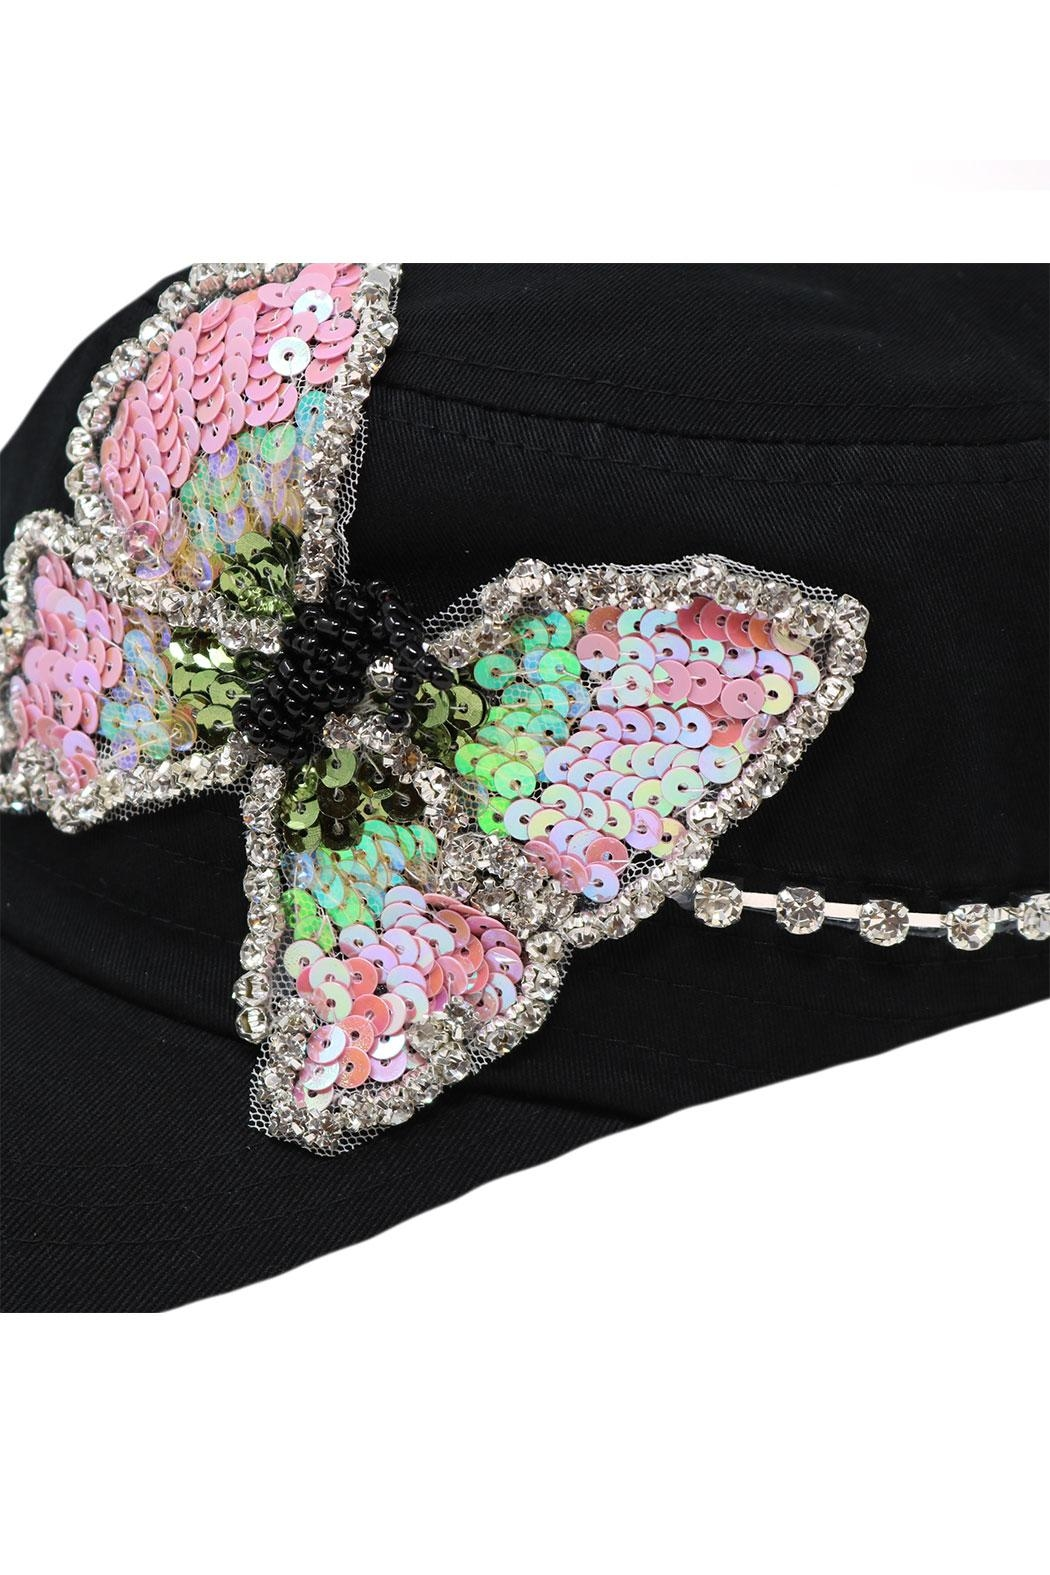 Nadya's Closet Butterfly Sequins Rhinestone-Cap - Back Cropped Image